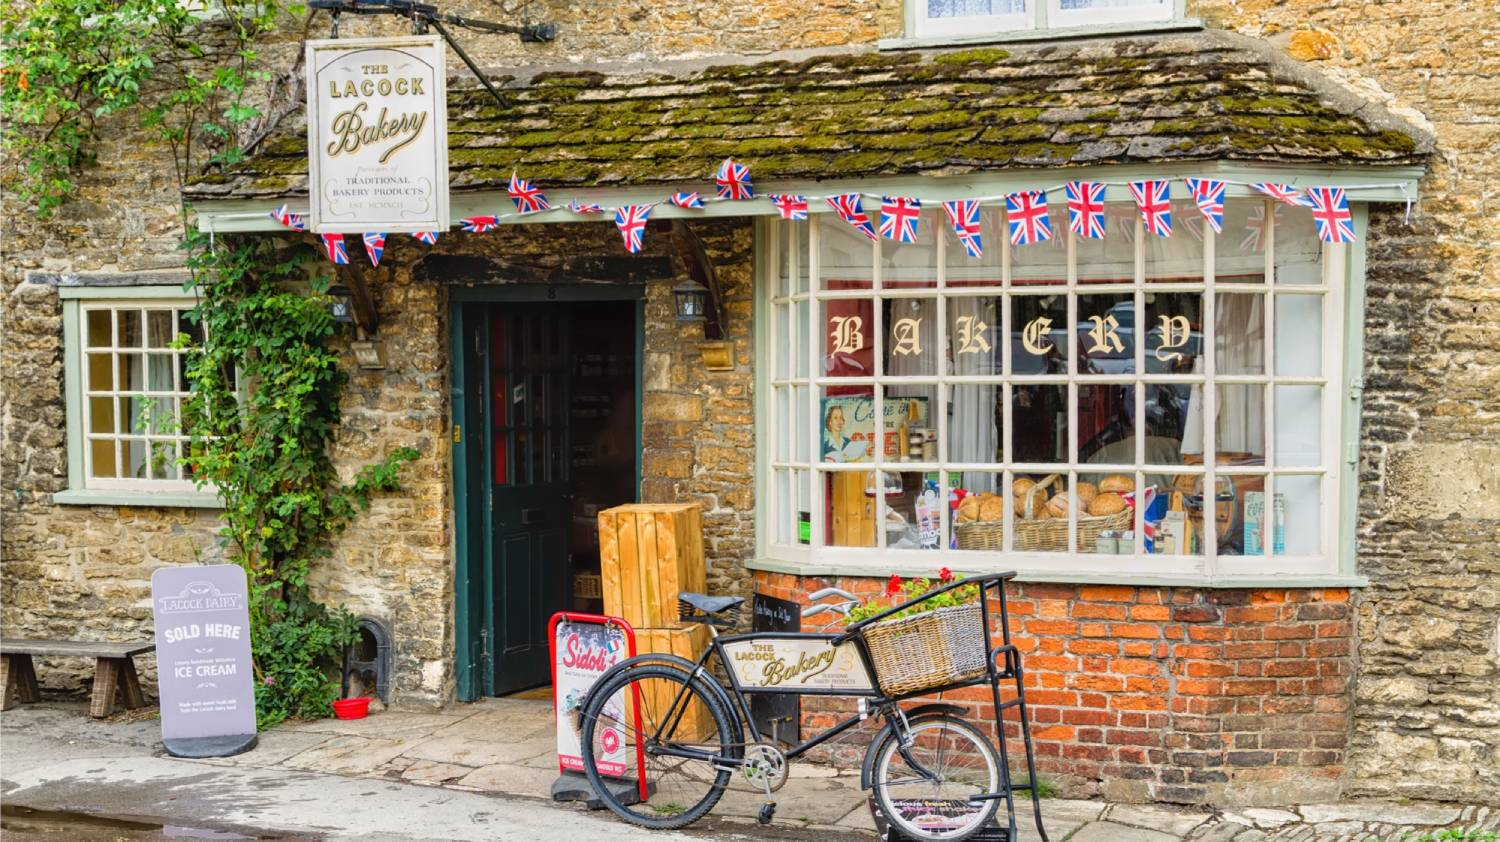 Lacock - The Best Places To Visit In England